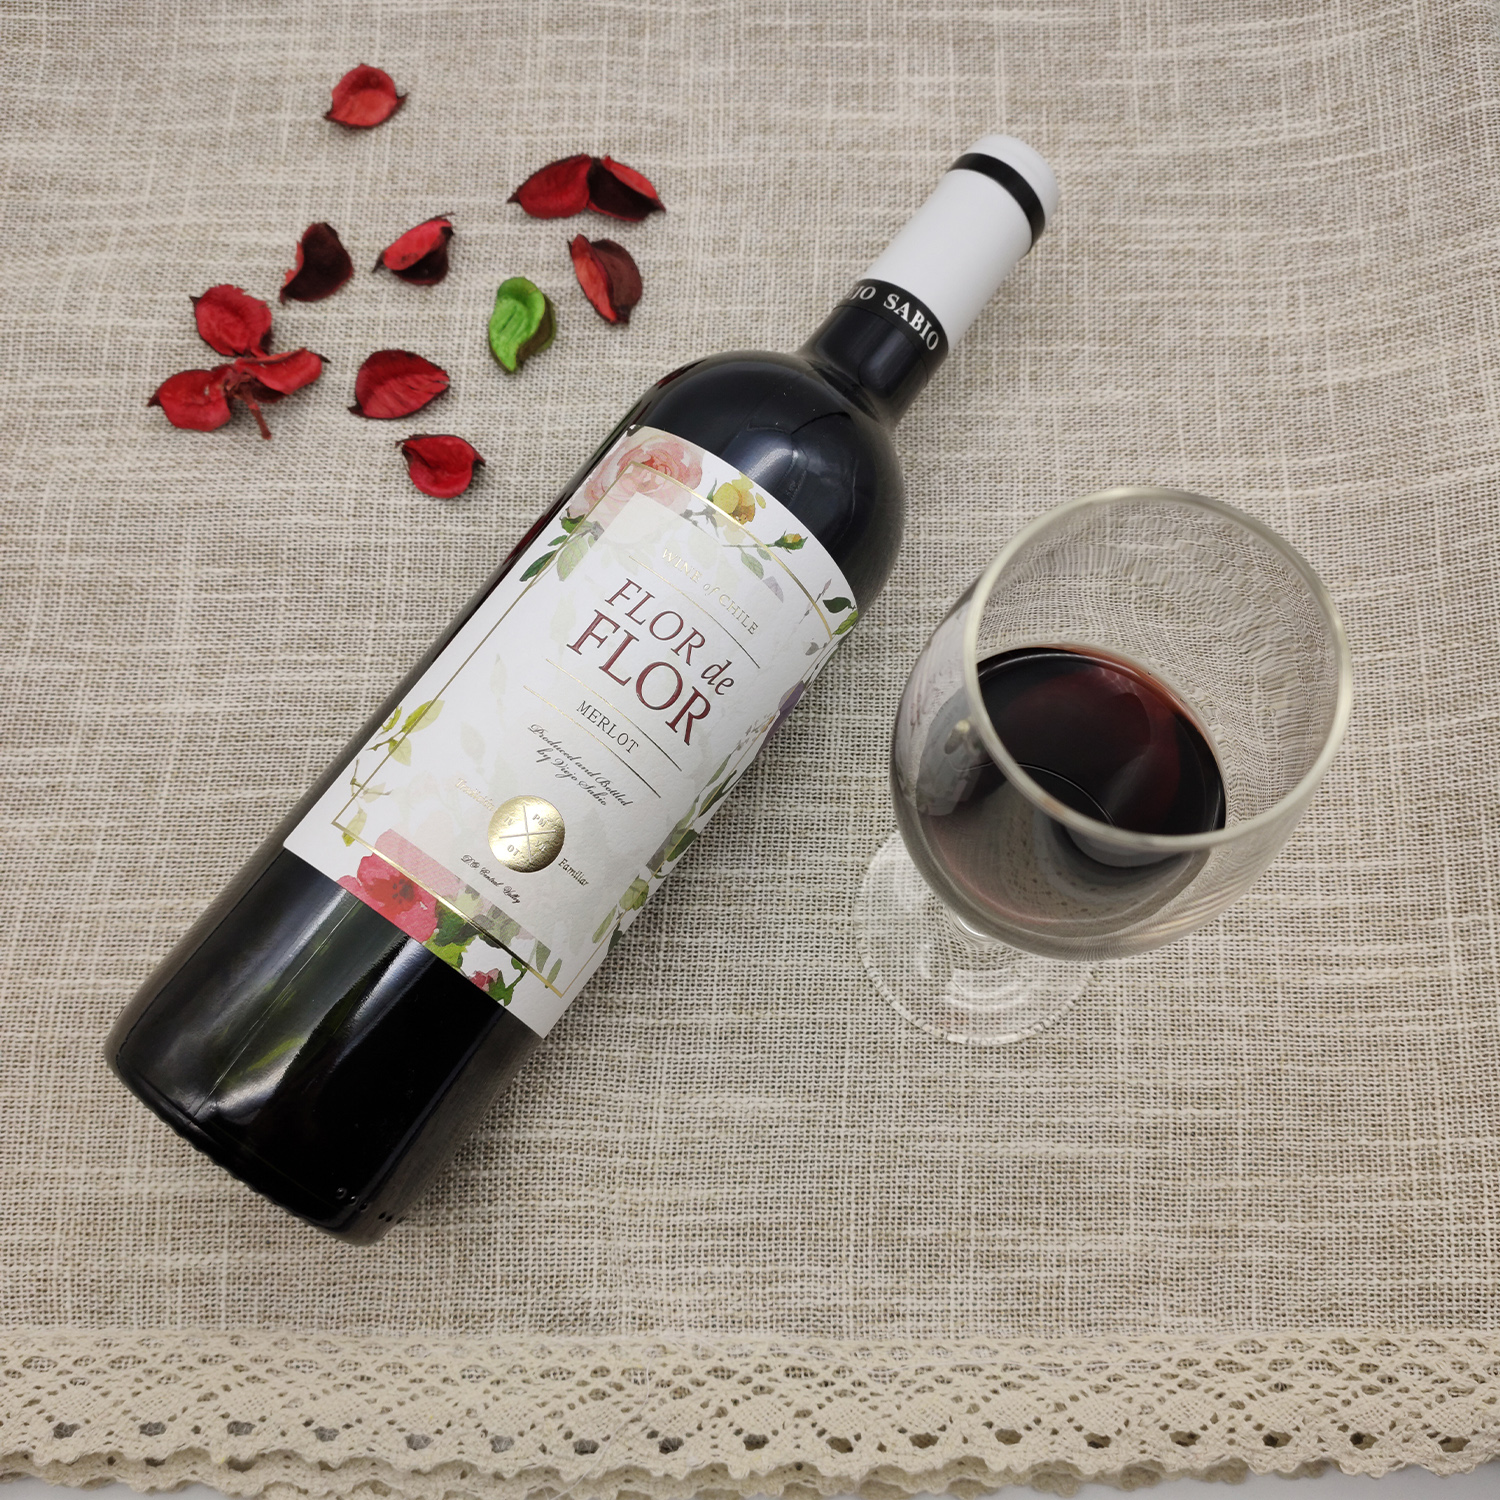 Chiles original bottle of imported central valley red wine, romantic Huashen, semi sweet Merlot, slightly tipsy, good night